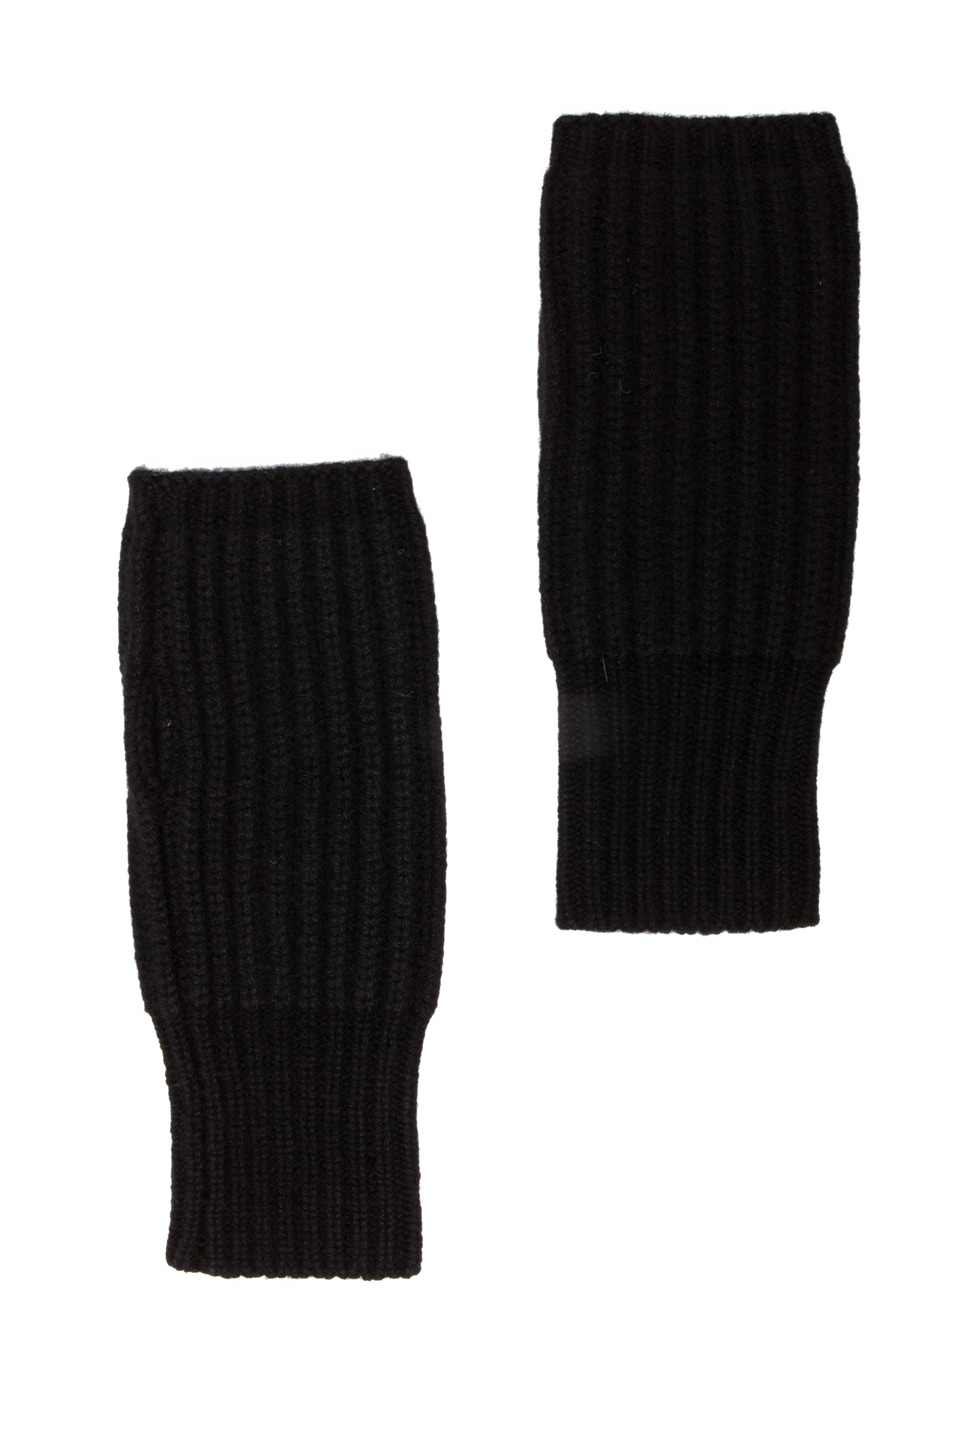 DemyLee Cashmere Wrist Warmer in Medium Black